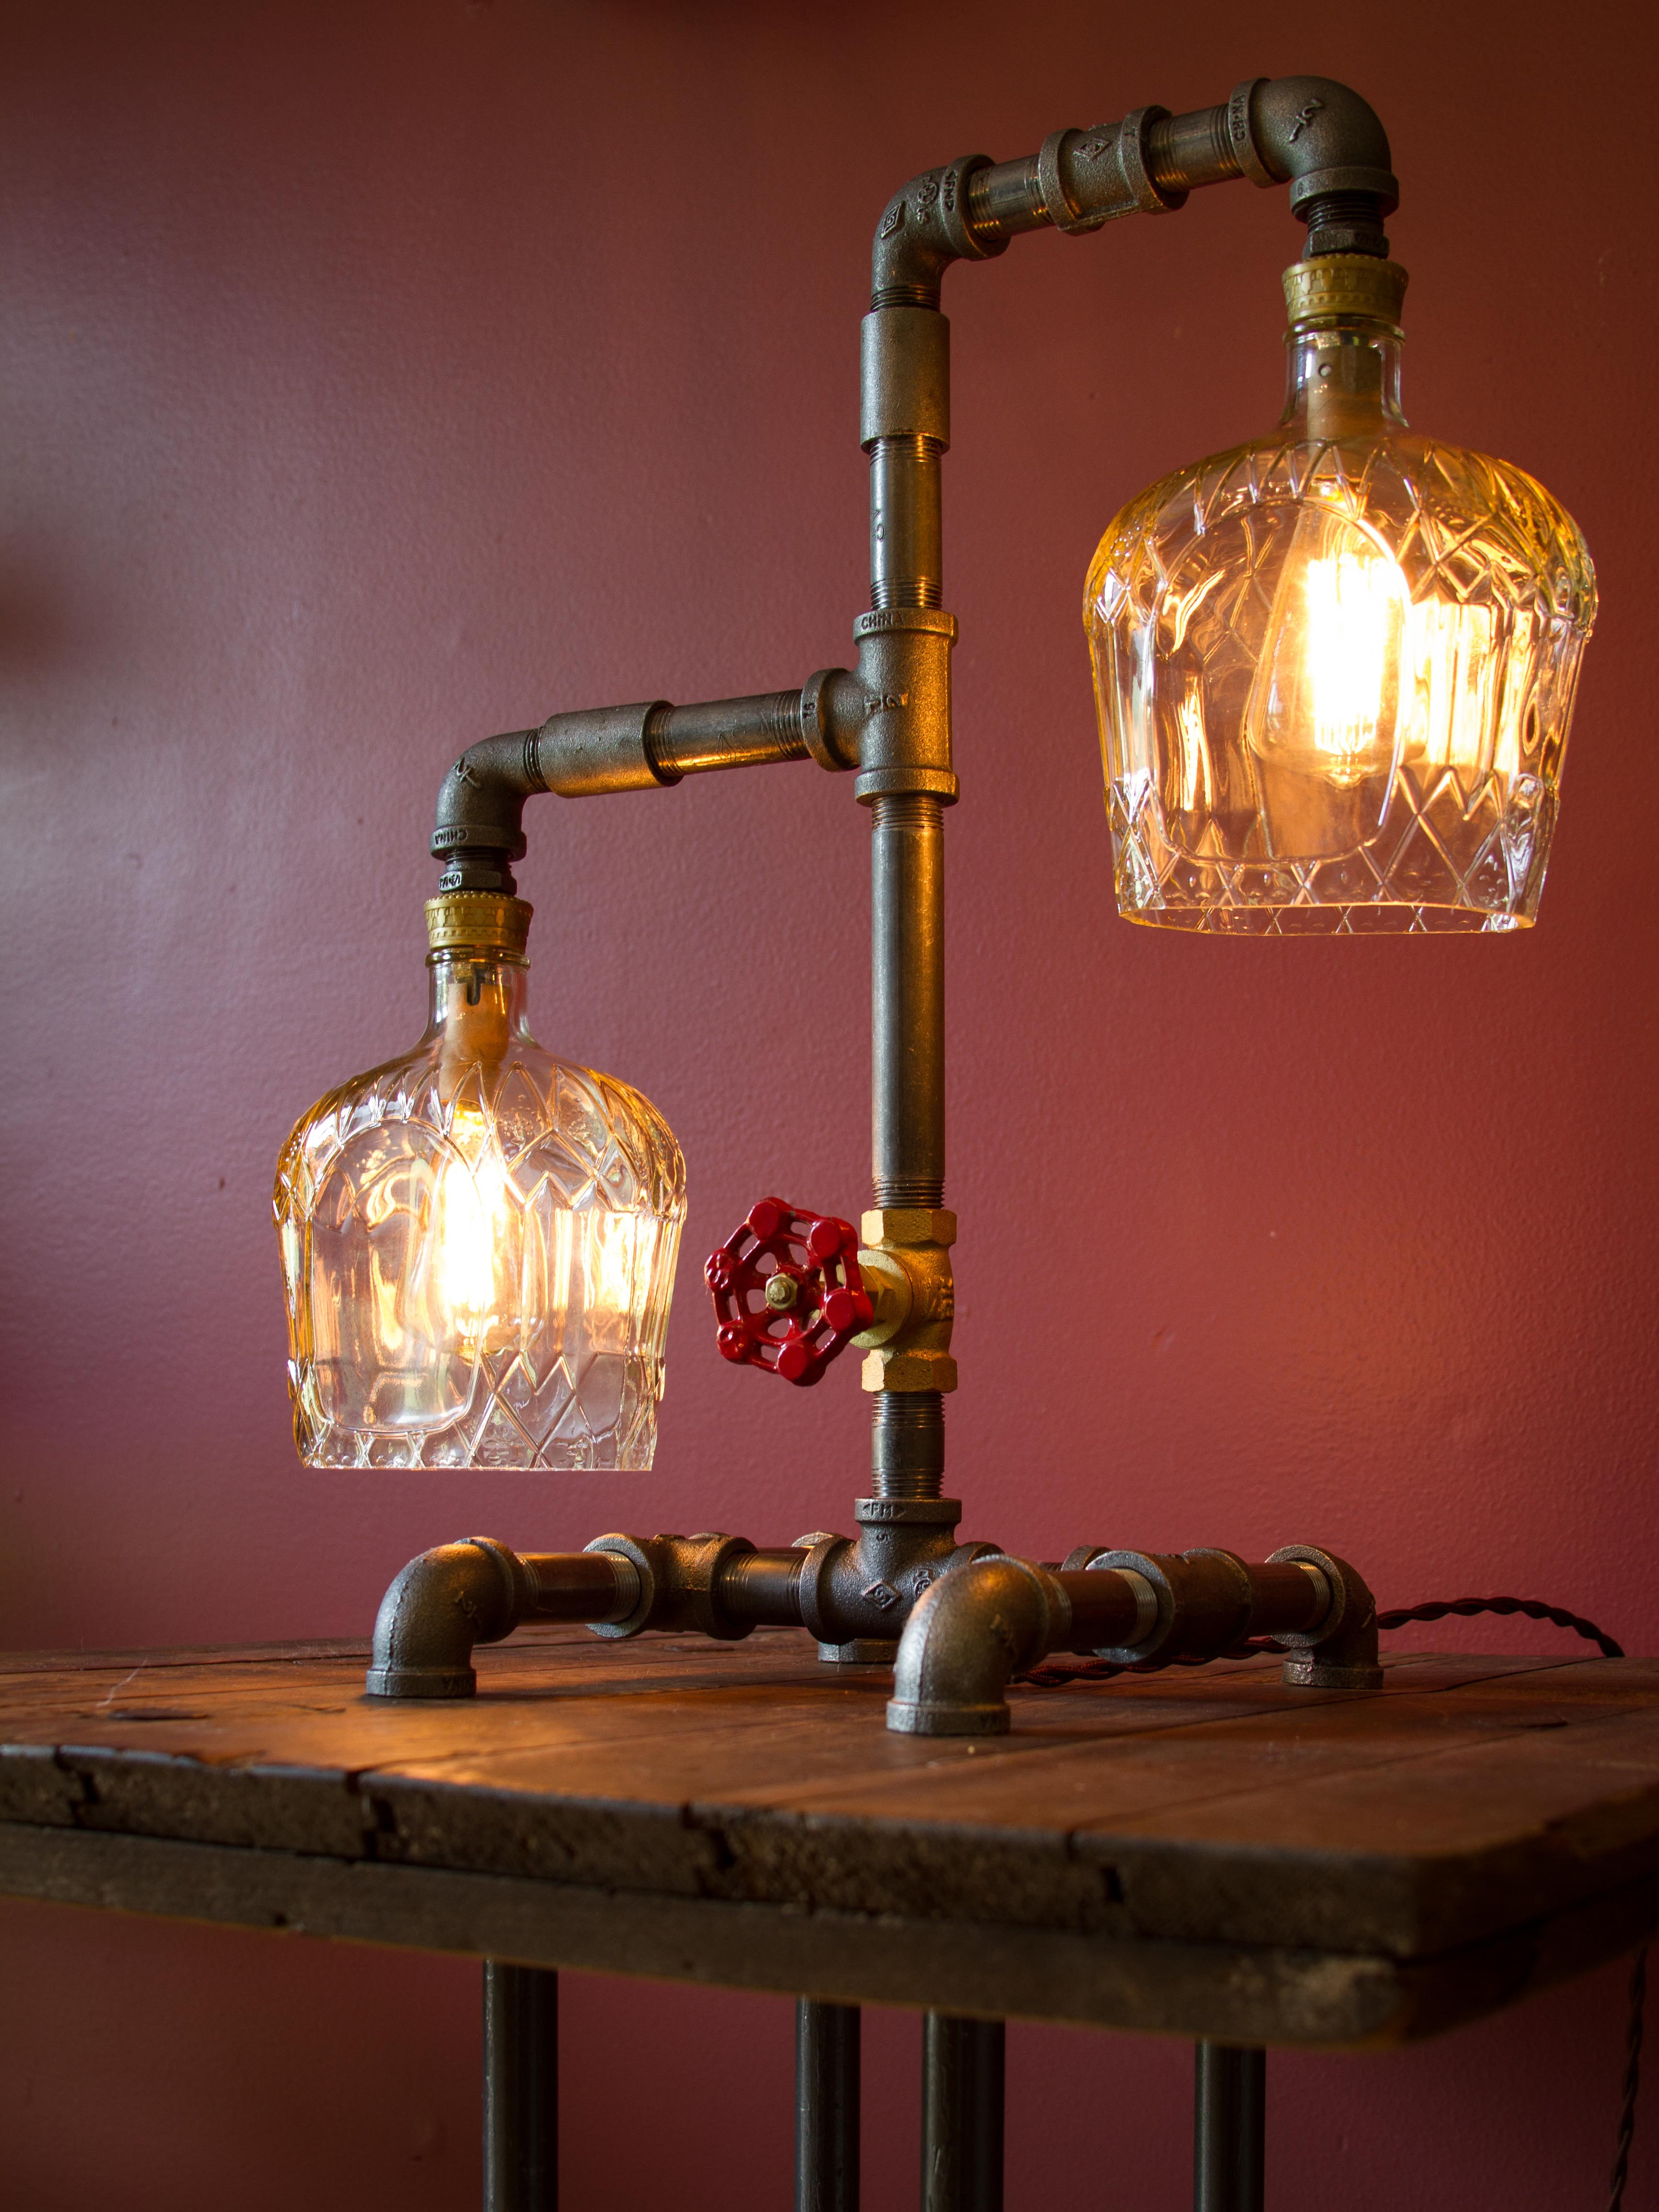 Rustic Industrial Lights | PA | StoneCold Designz | Crown Lamp